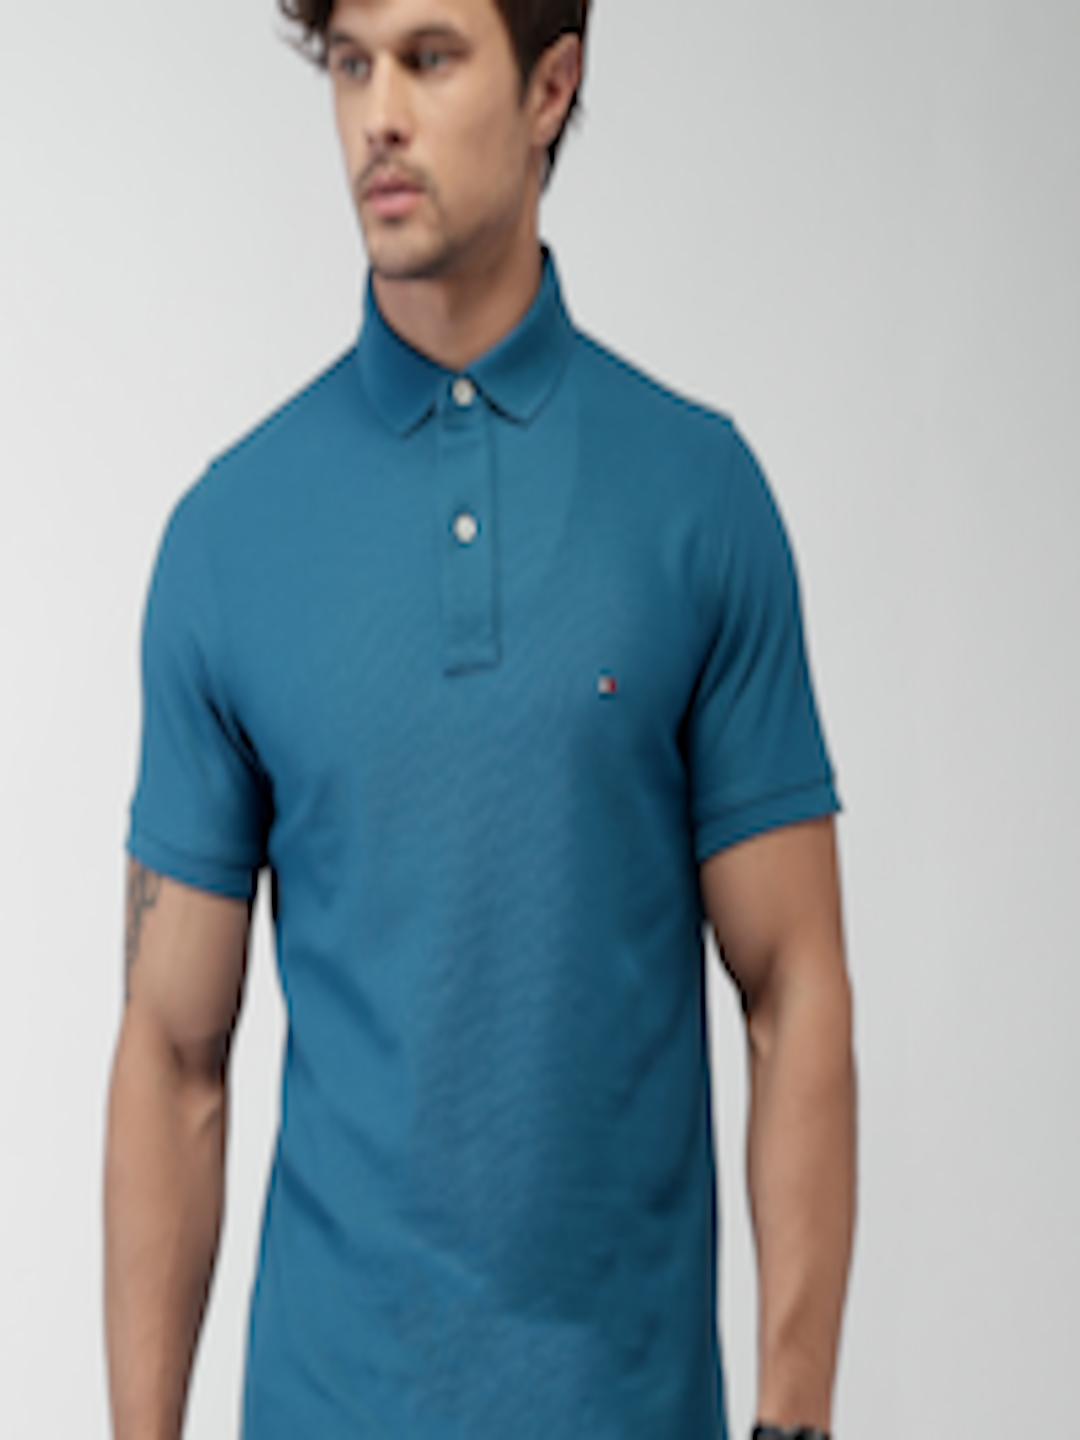 Buy Tommy Hilfiger Teal Blue Slim Fit Polo T Shirt ...